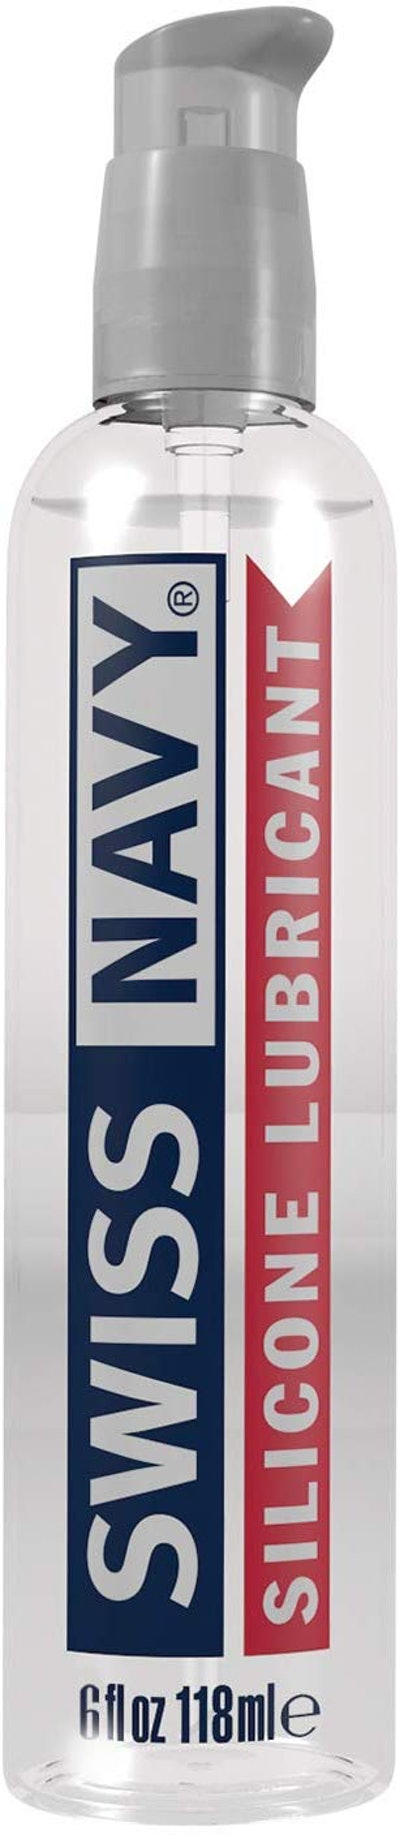 Swiss Navy Personal Lubricant Silicone